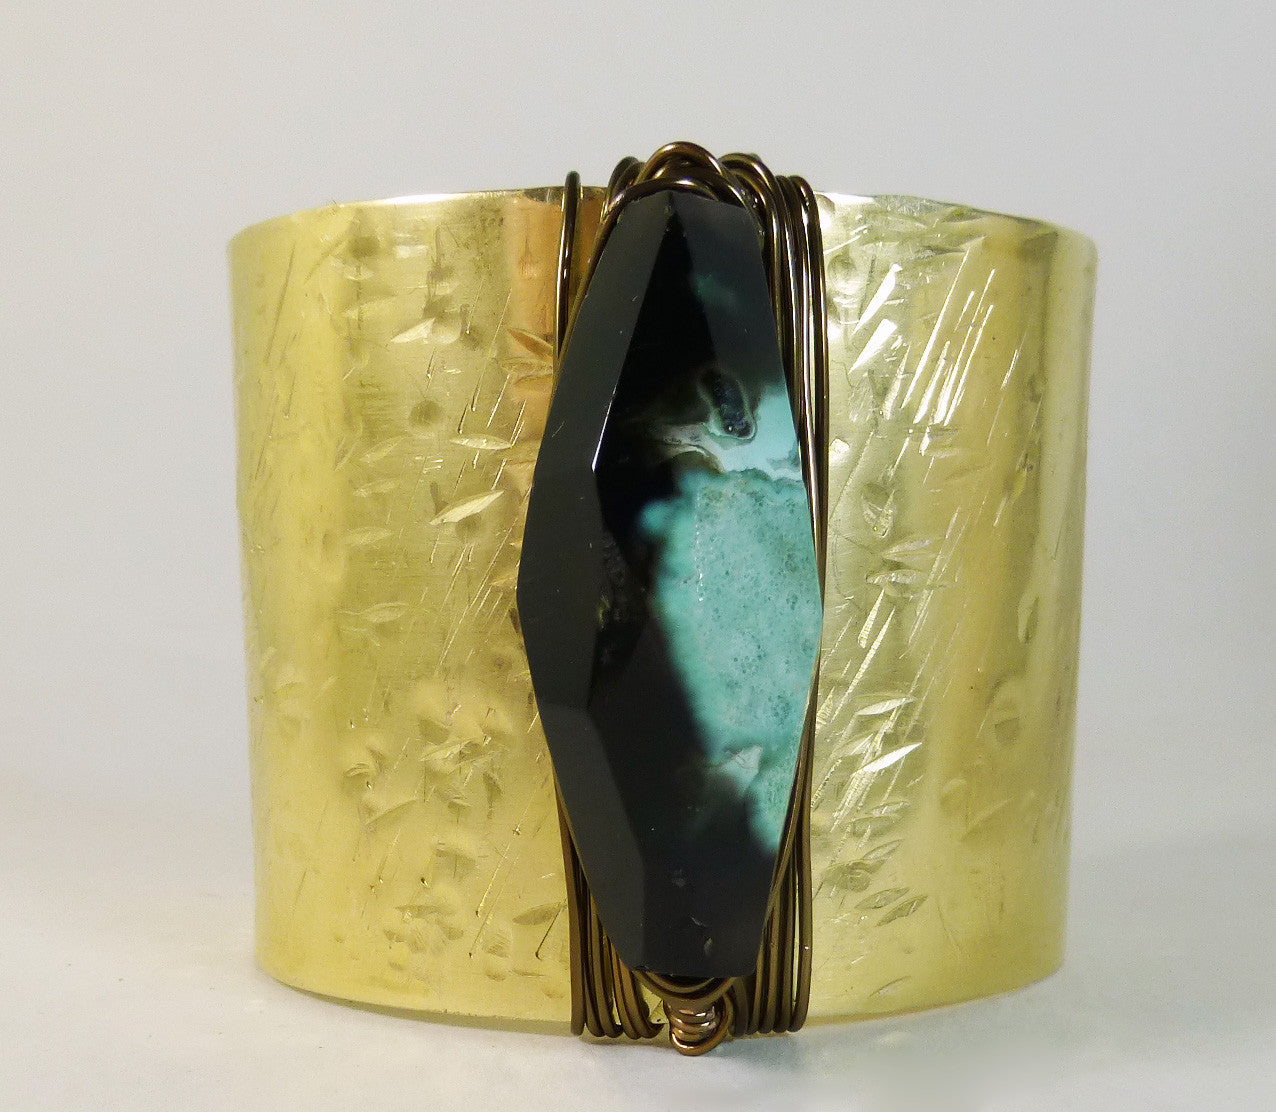 Bohemian Gypsy brass & vintage assemblage with black and green agate  large cuff bracelet.